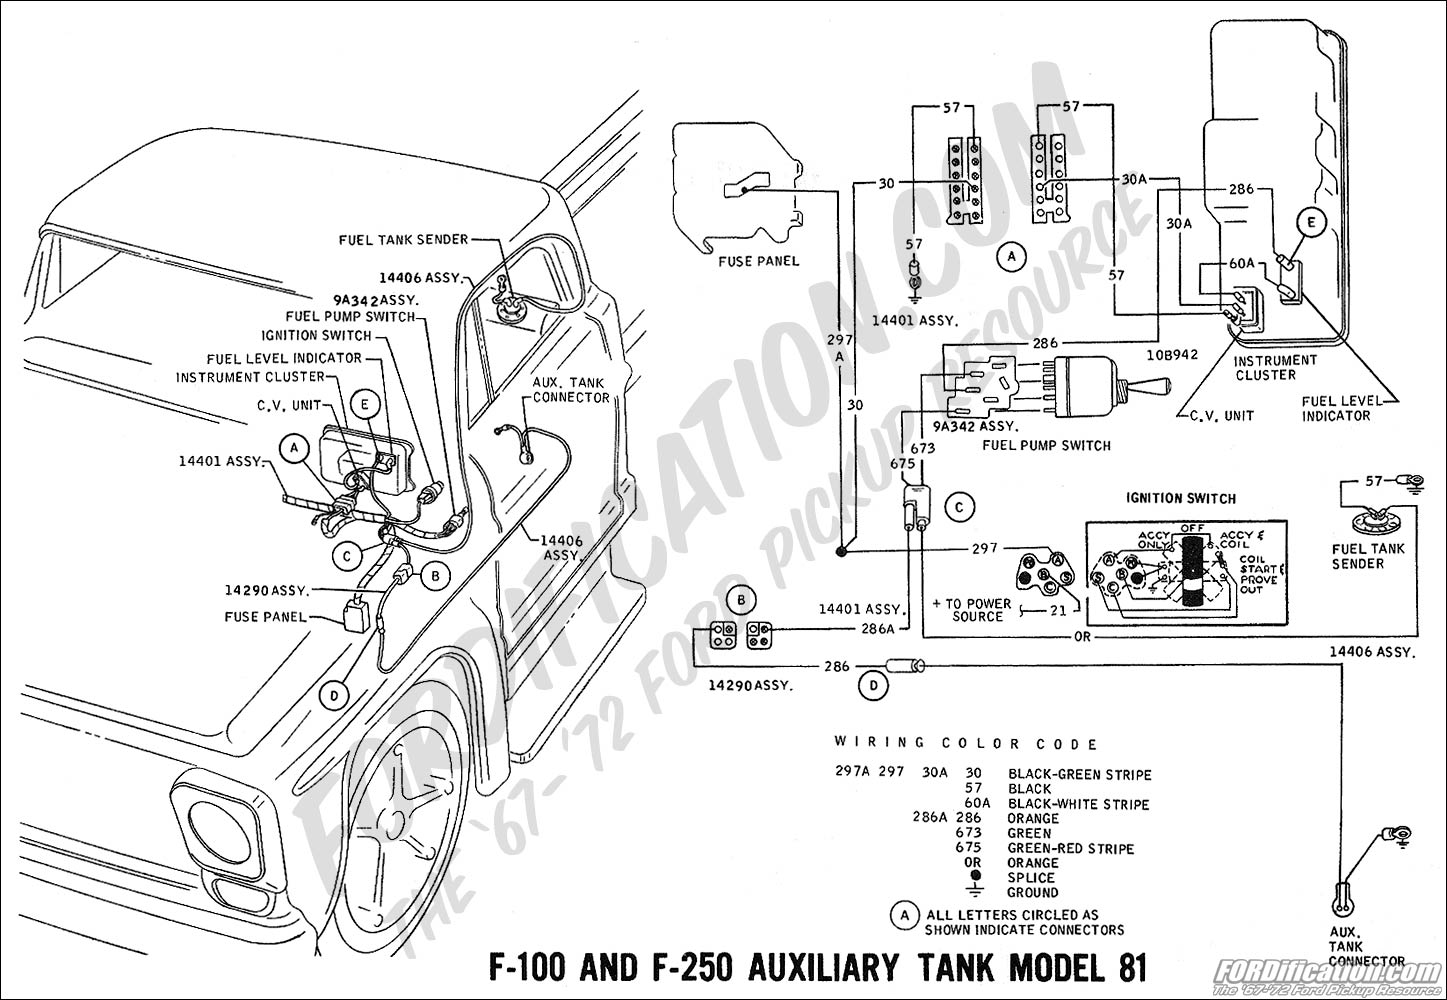 Truck Ford F Wiring Diagrams on 1985 dodge ram 3500 wiring diagram, 1985 ford f800 parts, 1985 chevrolet silverado wiring diagram, 1990 ford f800 wiring diagram, 1985 ford f800 solenoid, 1985 ford f800 clutch, 1986 ford f800 wiring diagram, 1991 ford f800 wiring diagram,